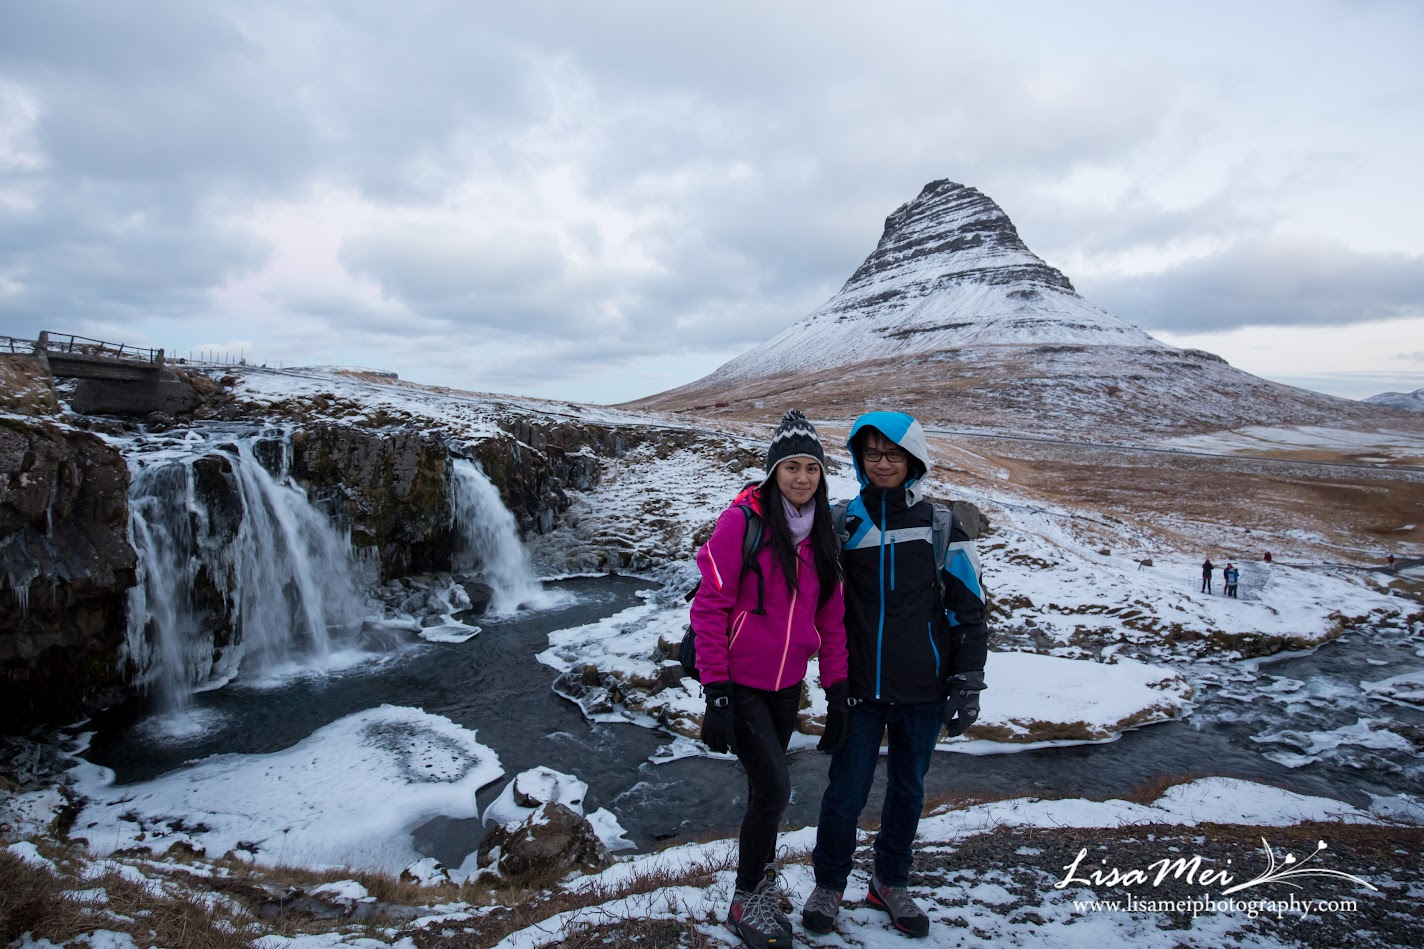 We arrived at 4:30 am and drove straight to Kirkjufellsfoss for sunrise at 10 am.